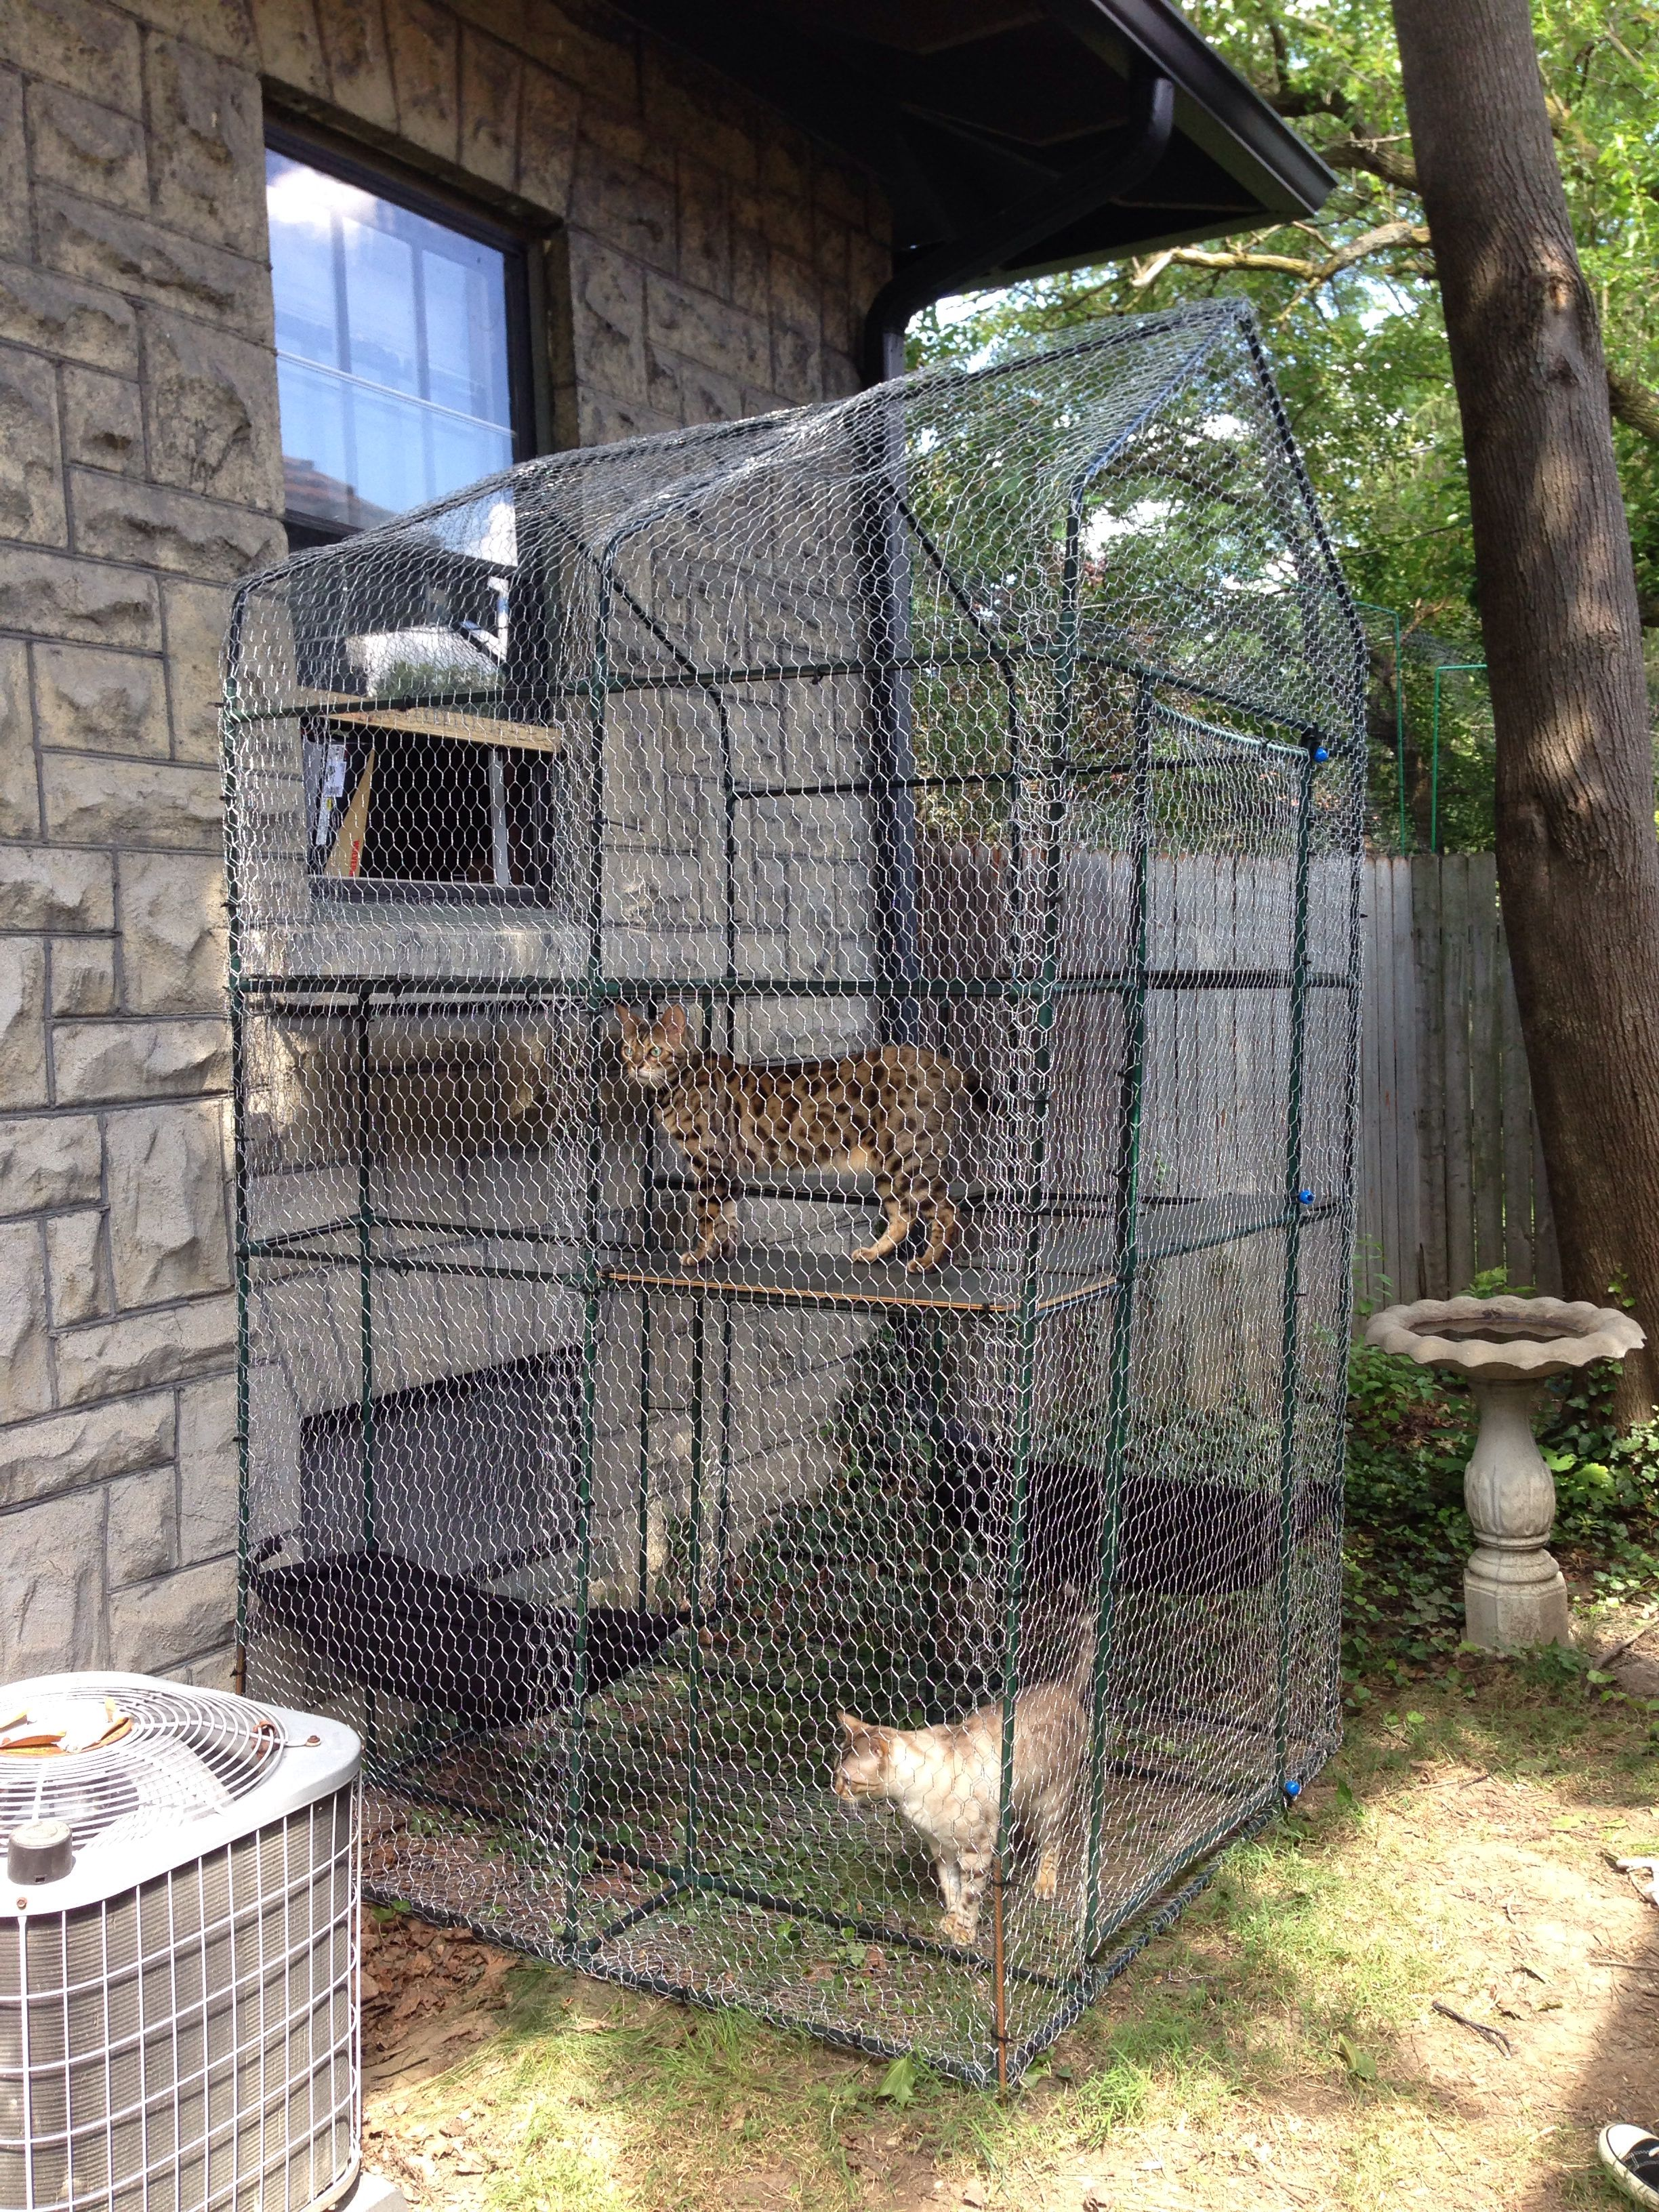 Catio for the cats to go outside via the window. I